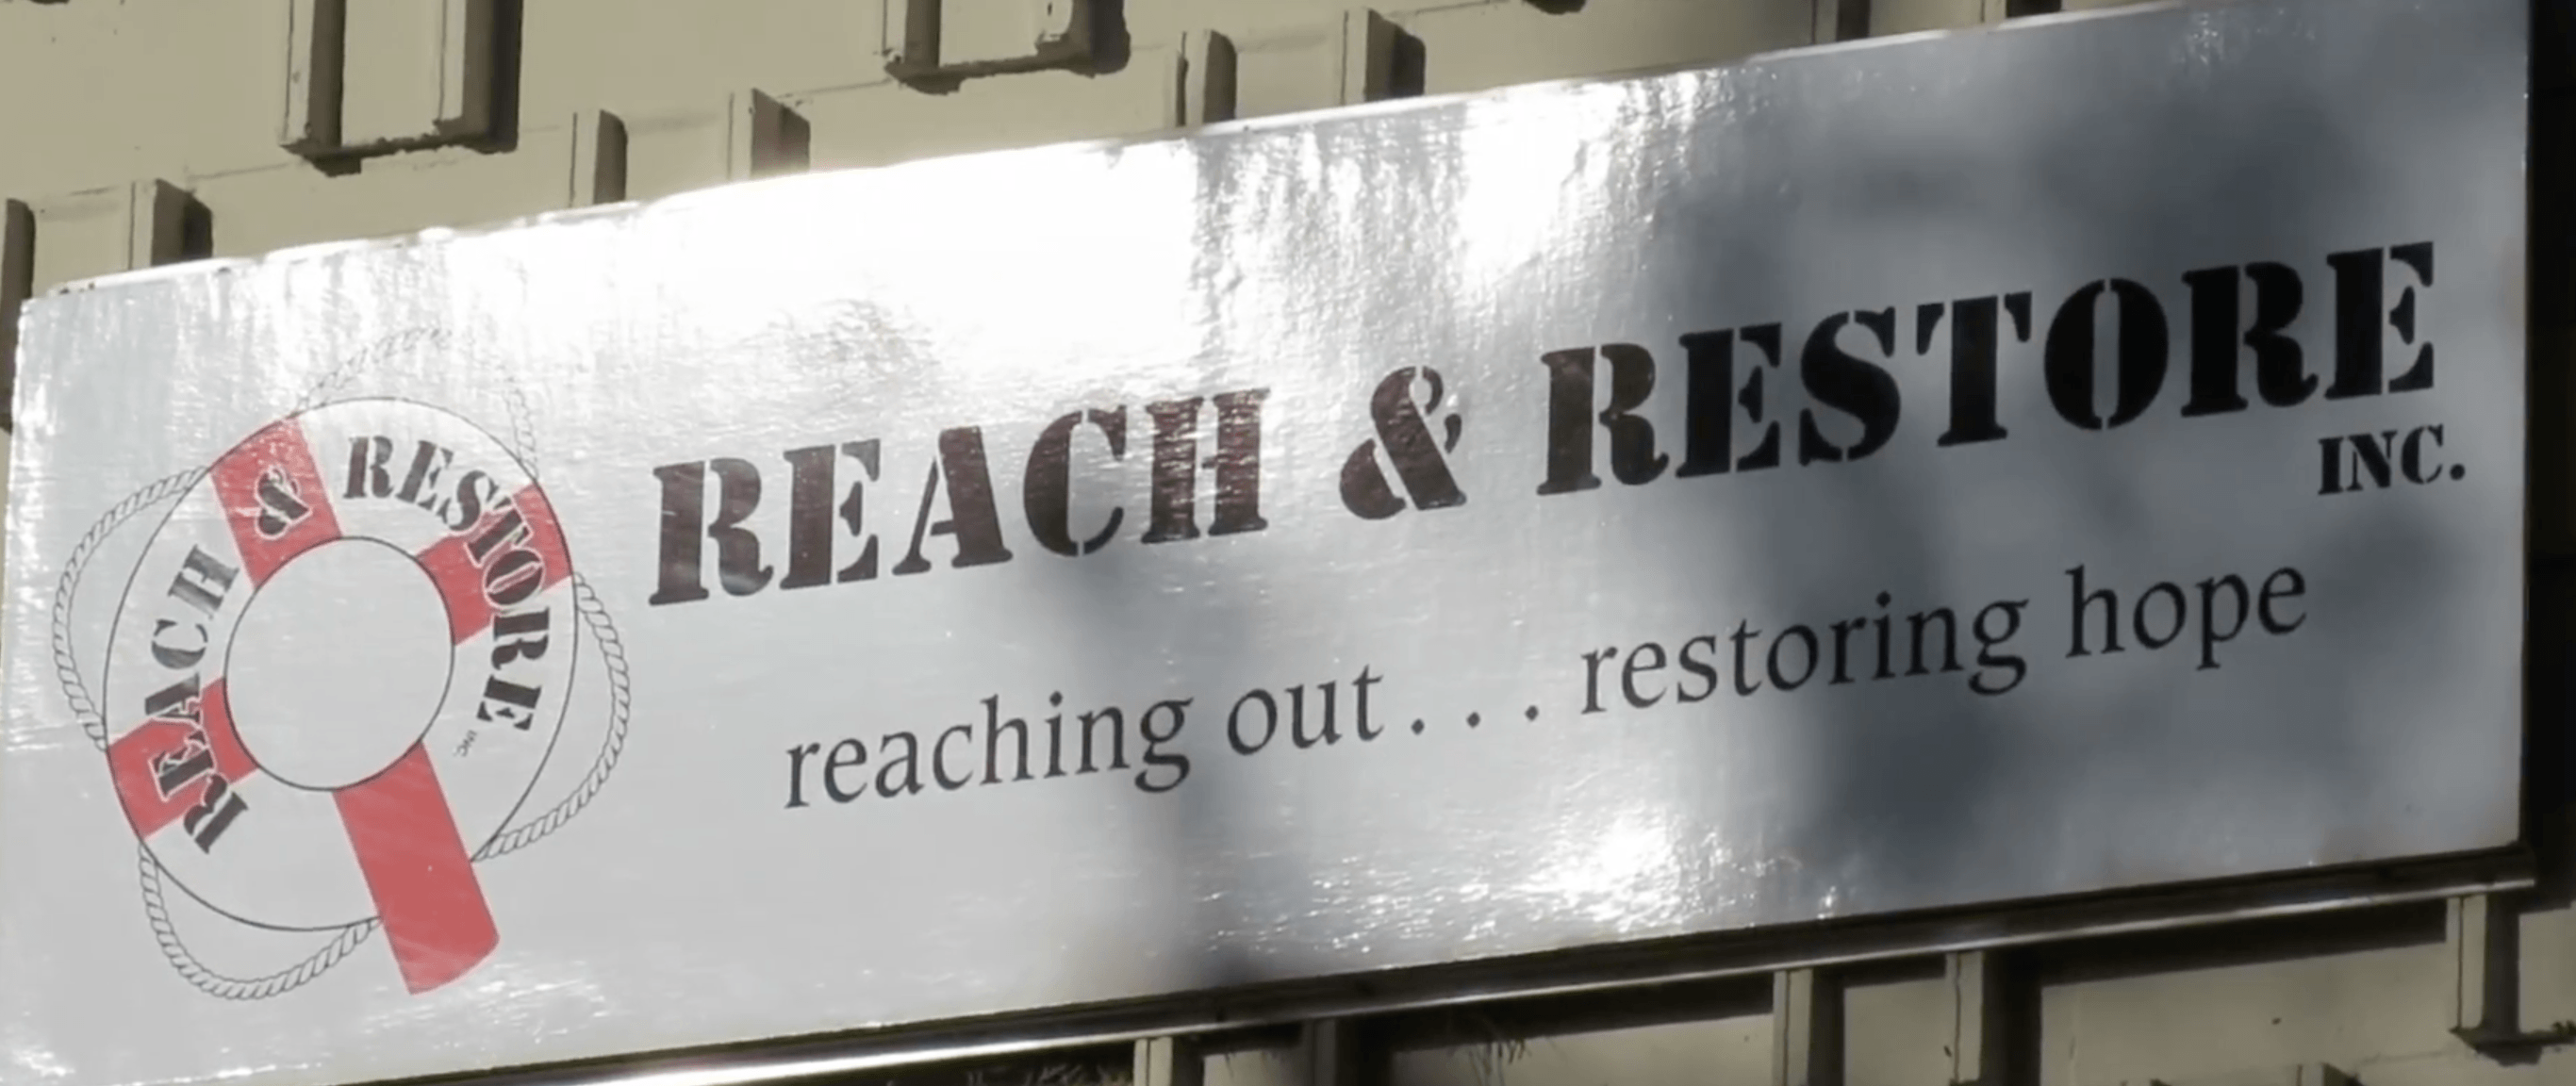 reach-and-restore